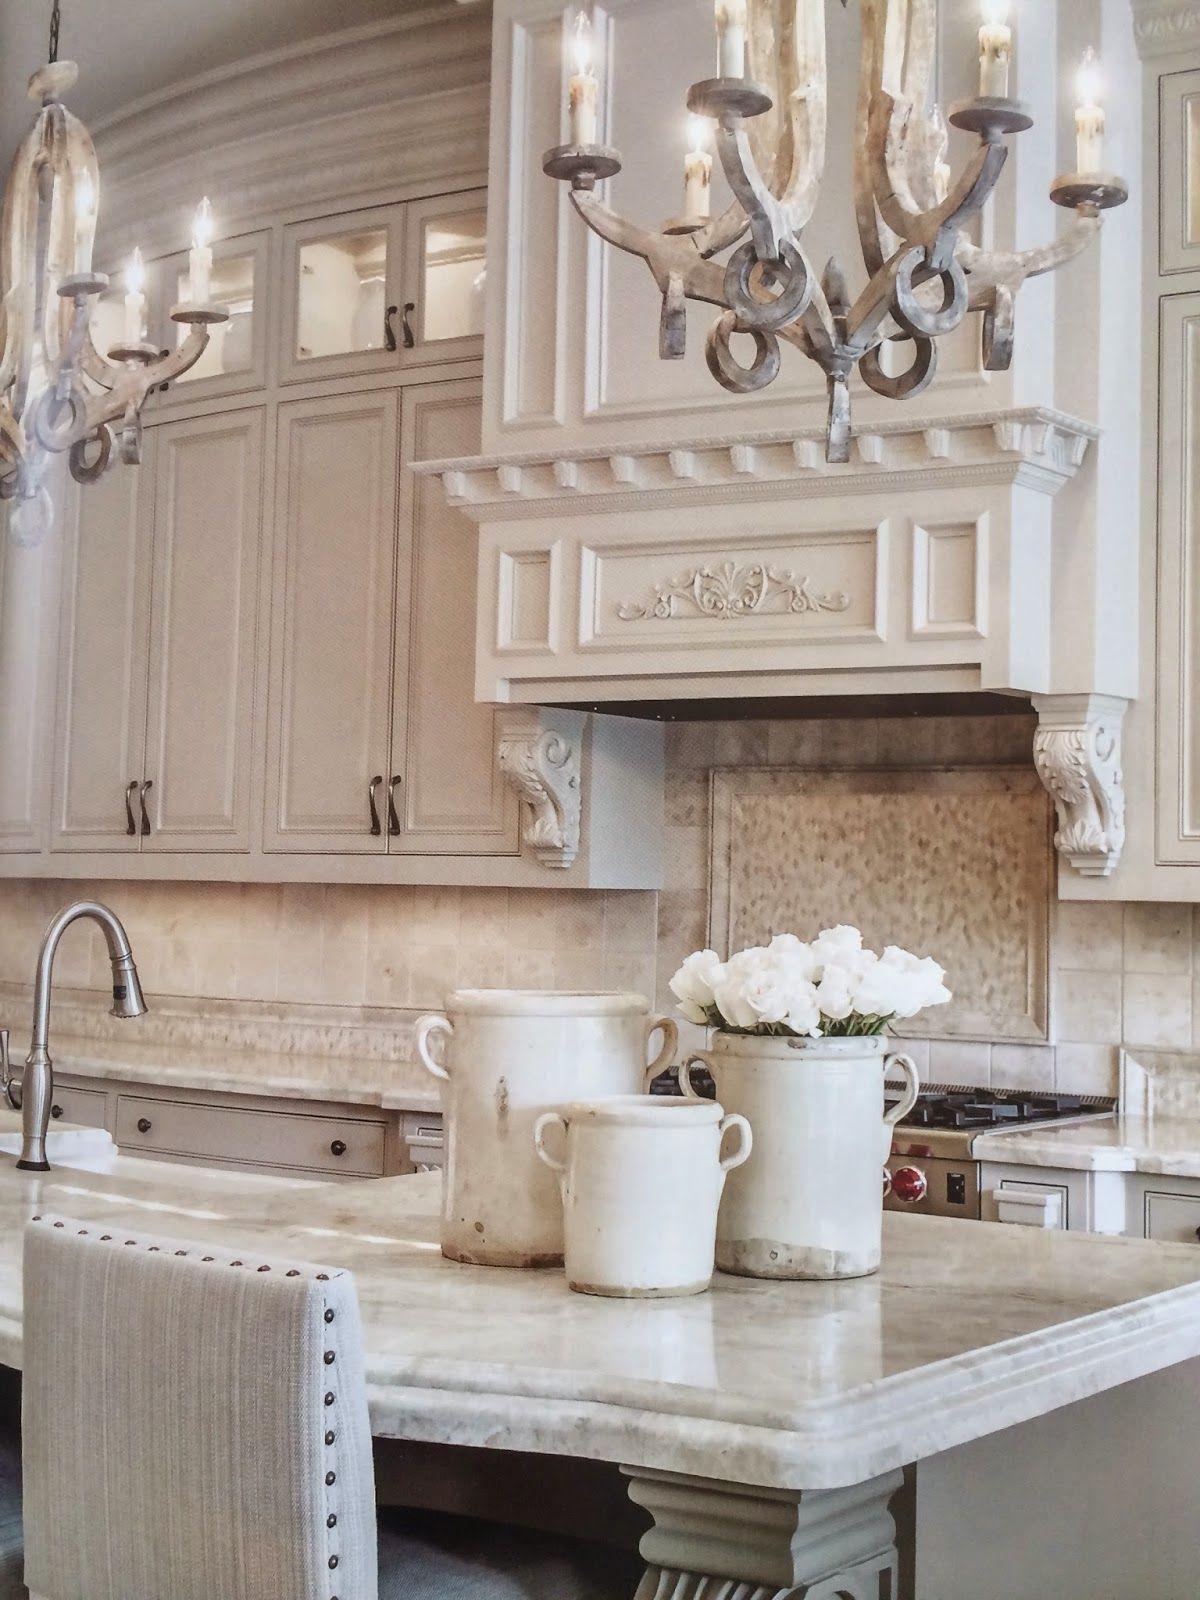 incredible french kitchen design | Incredible Painted Finishes! Segreto Style! in 2019 ...